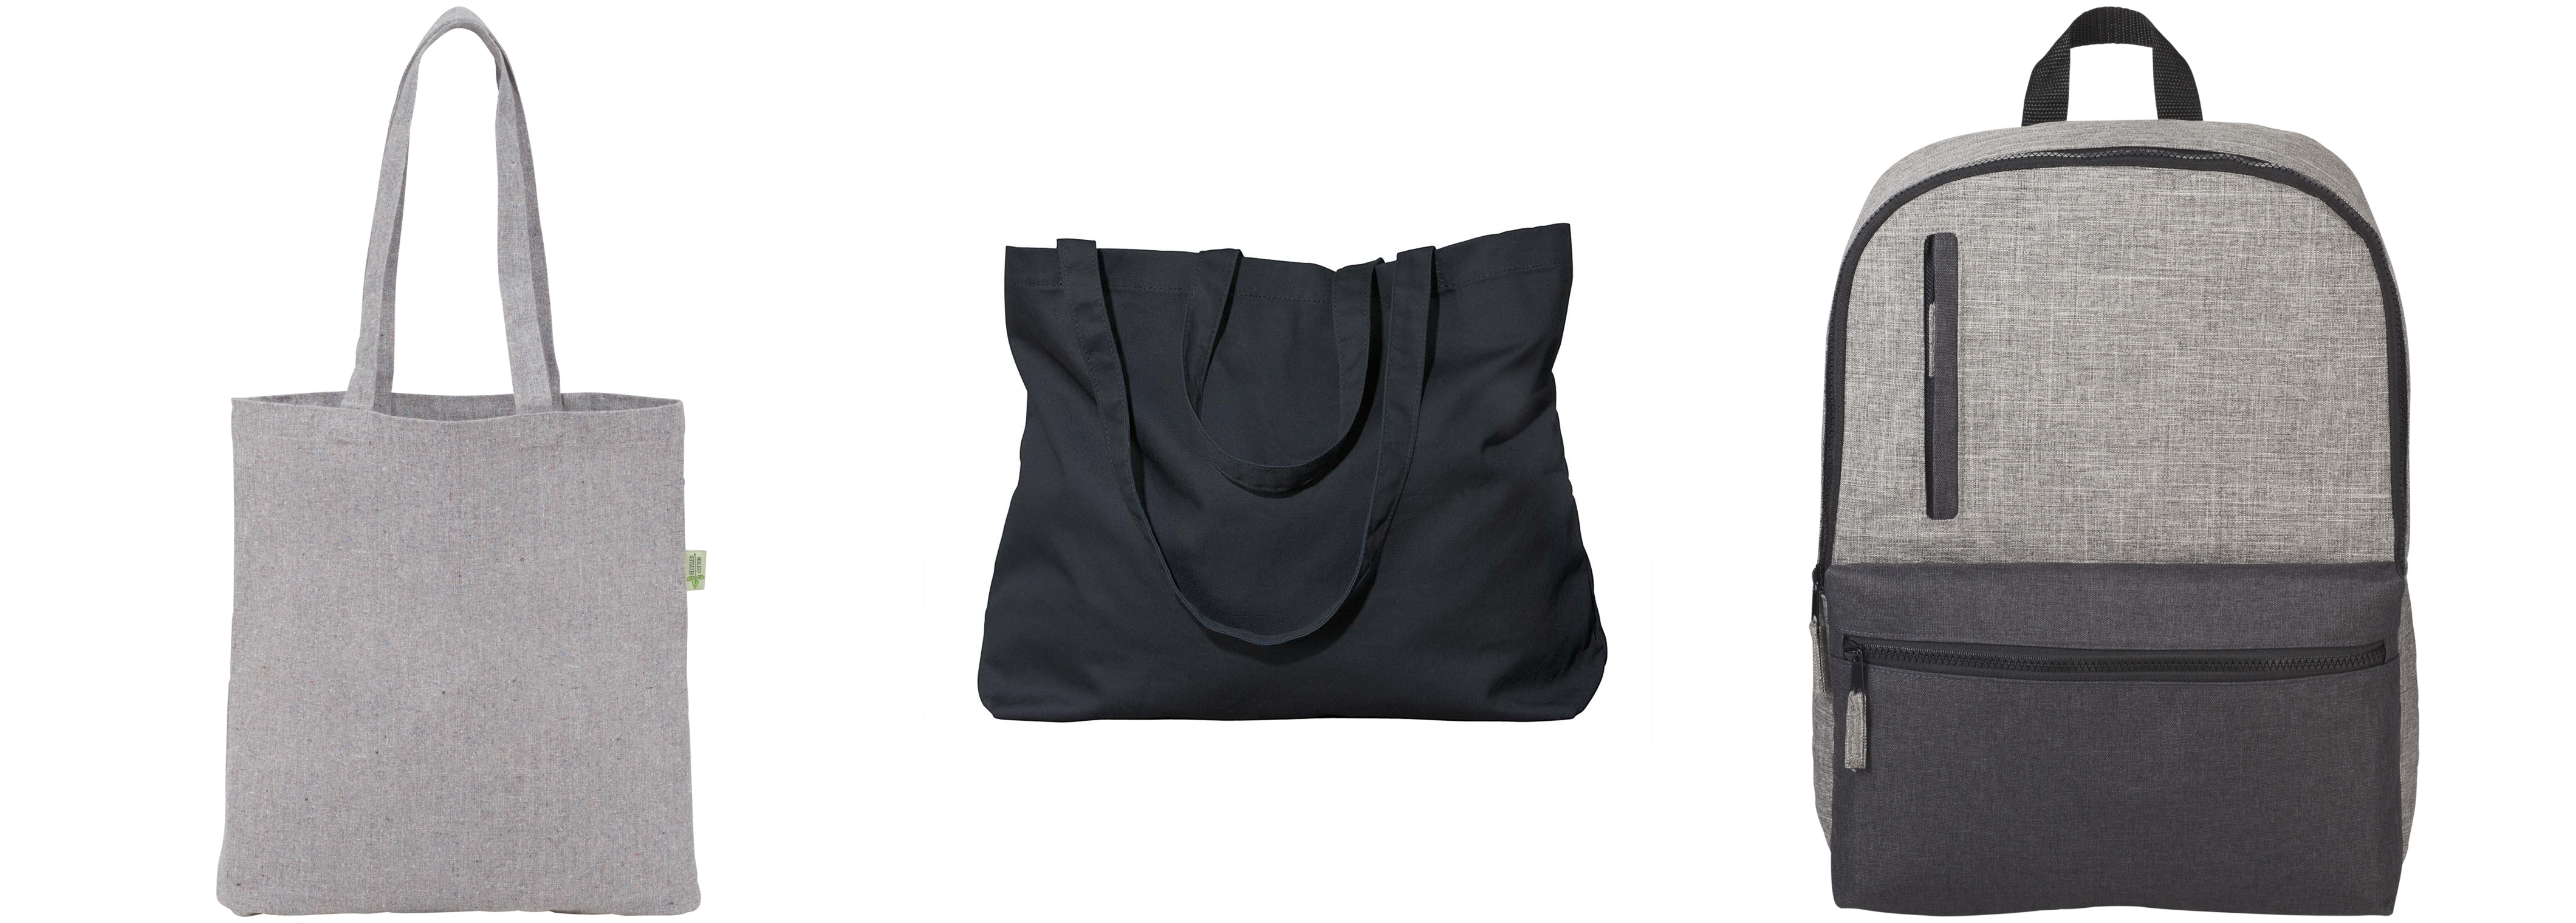 Eco Friendly Bags from NYFifth